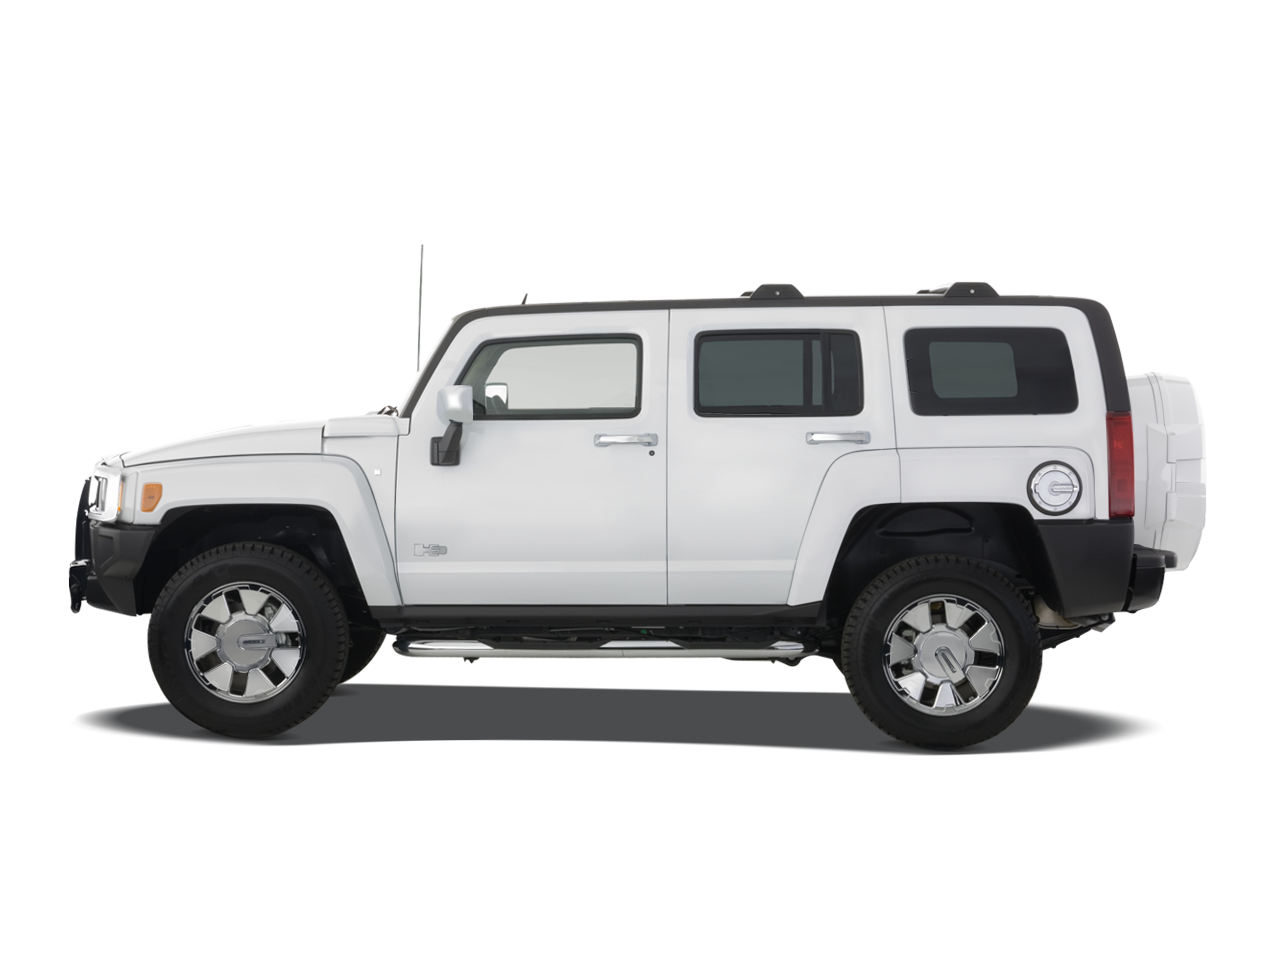 Jeep clipart side view. Off road trip hummer